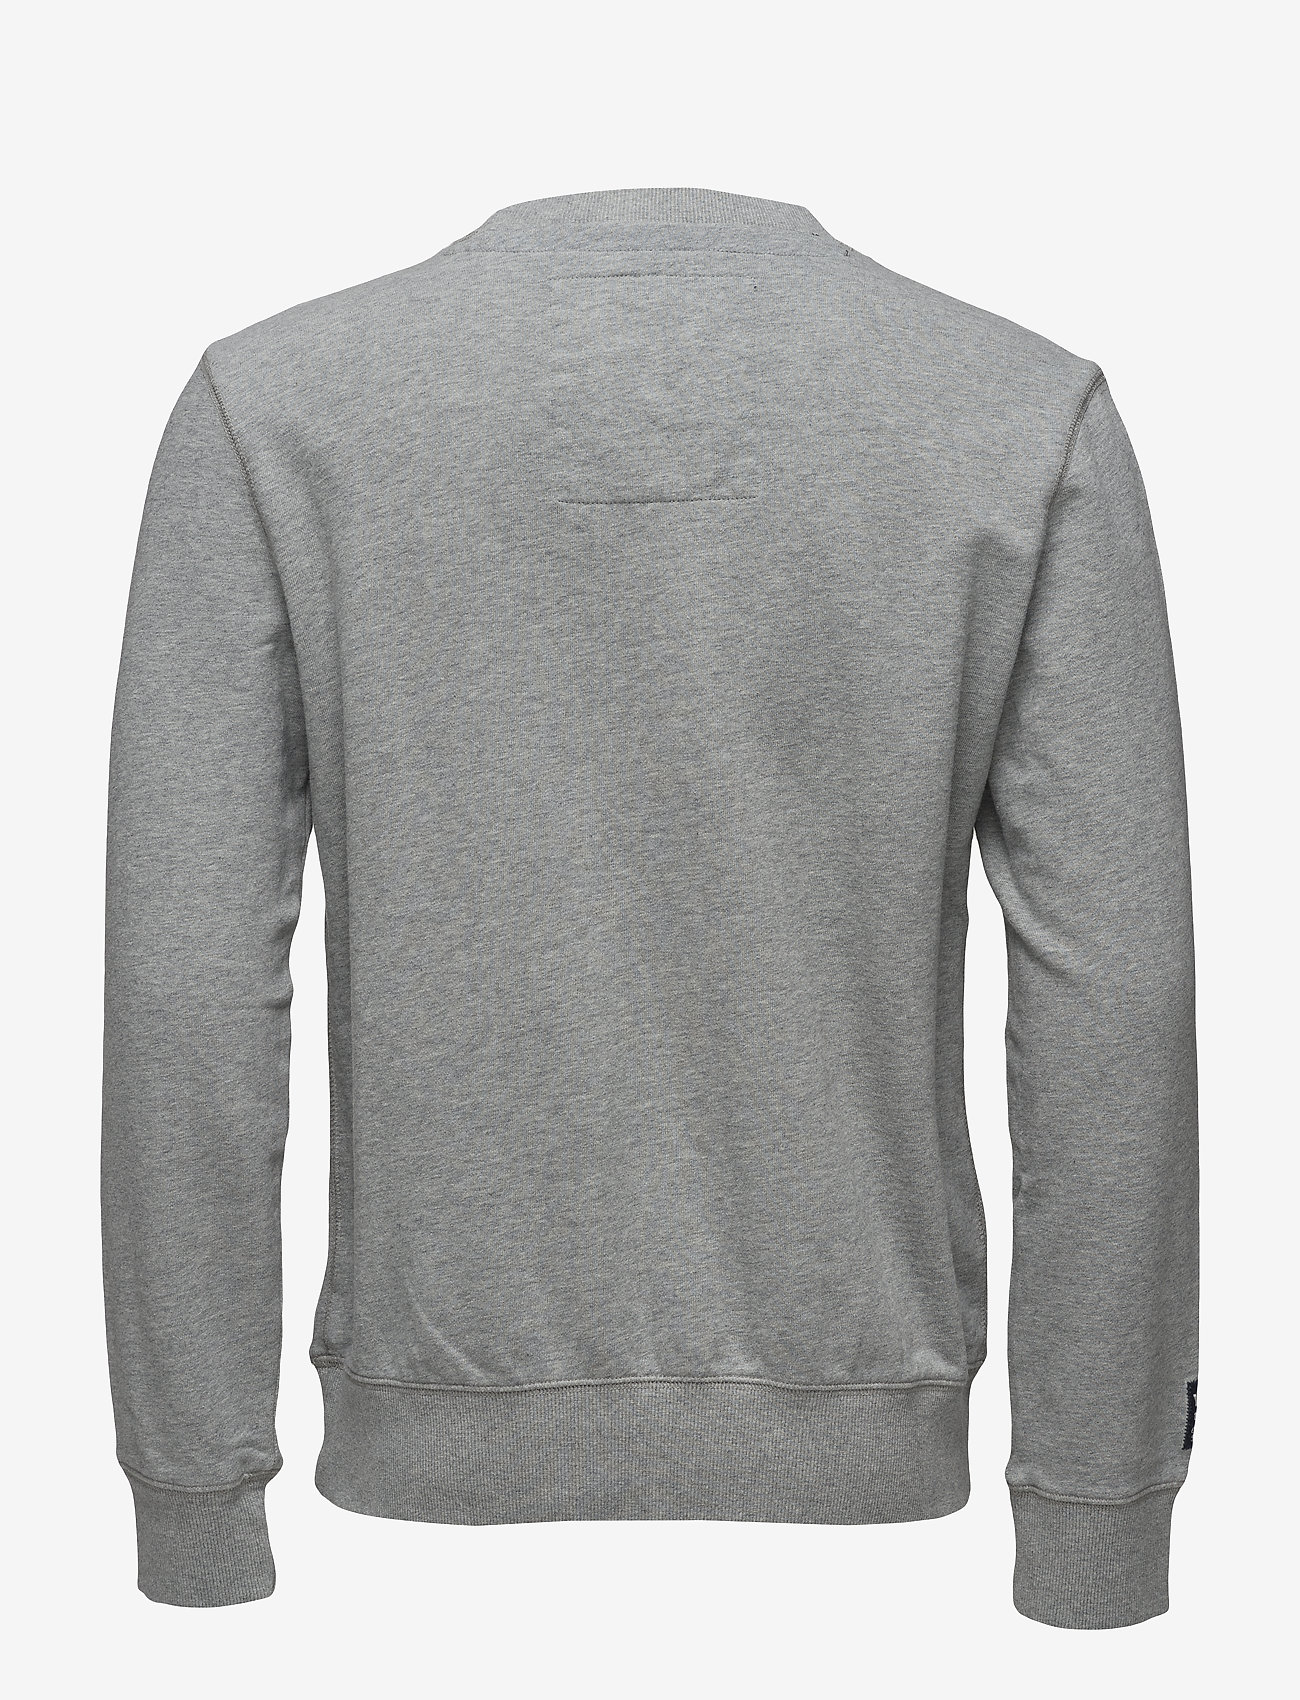 Morris - Brown Sweatshirt - sweatshirts - grey - 1